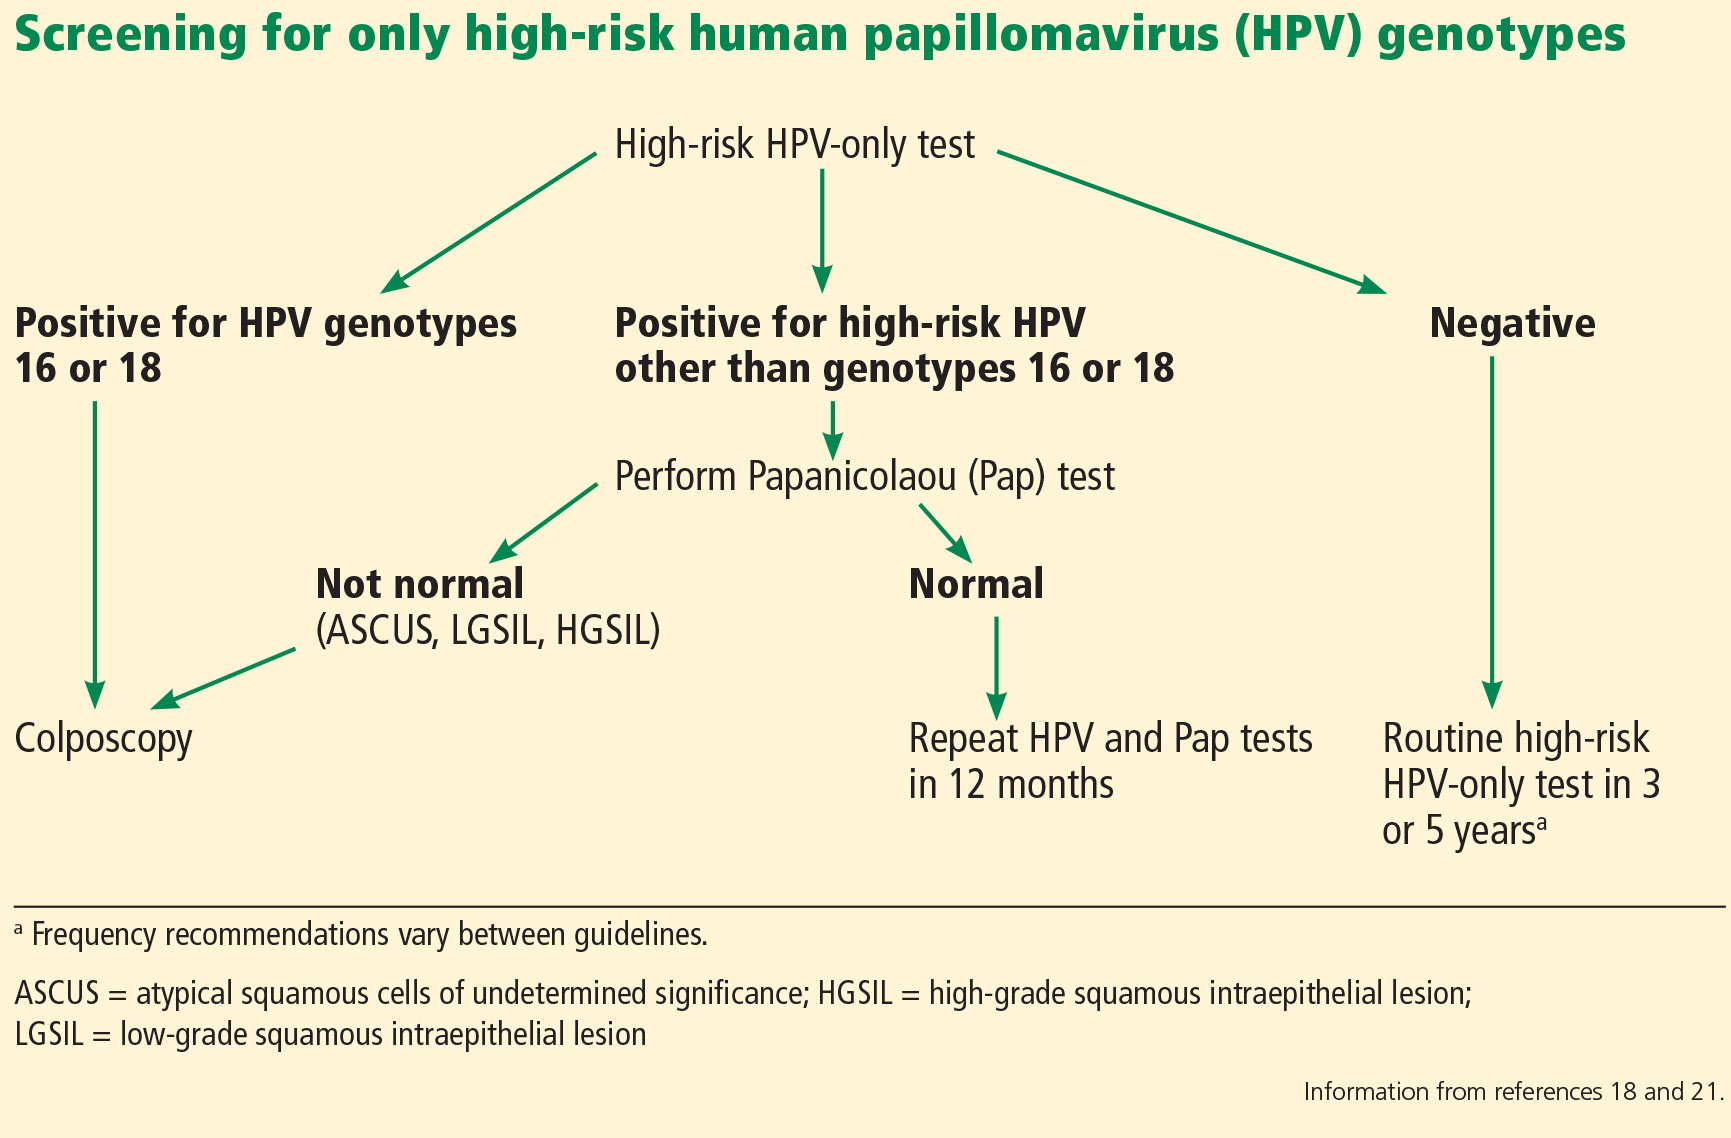 hpv high risk non- 16/ 18